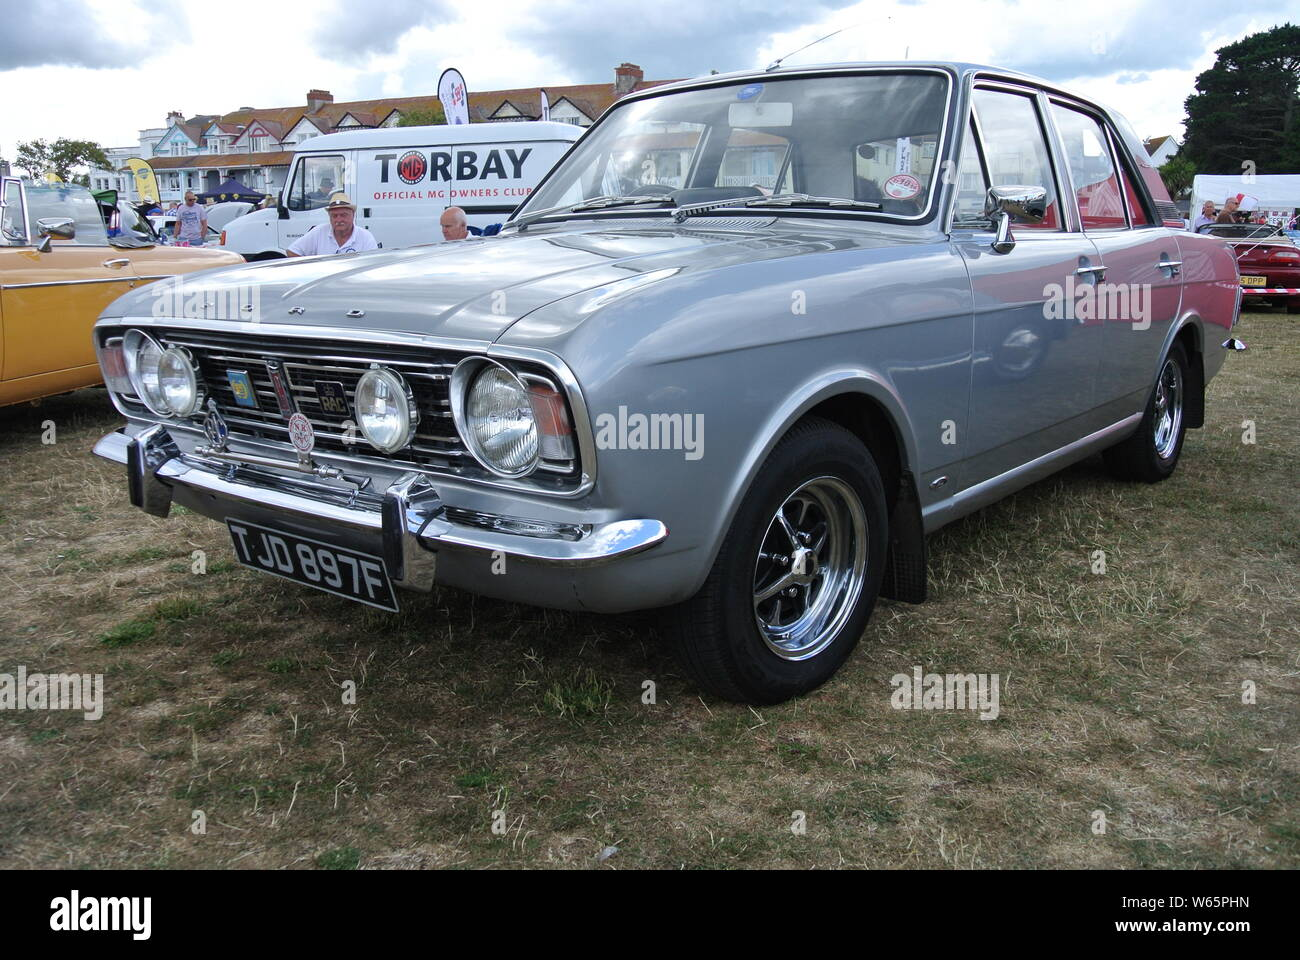 A 1968 Ford Cortina parked up on display at the English Riviera classic car show, Paignton, Devon, England. UK. Stock Photo